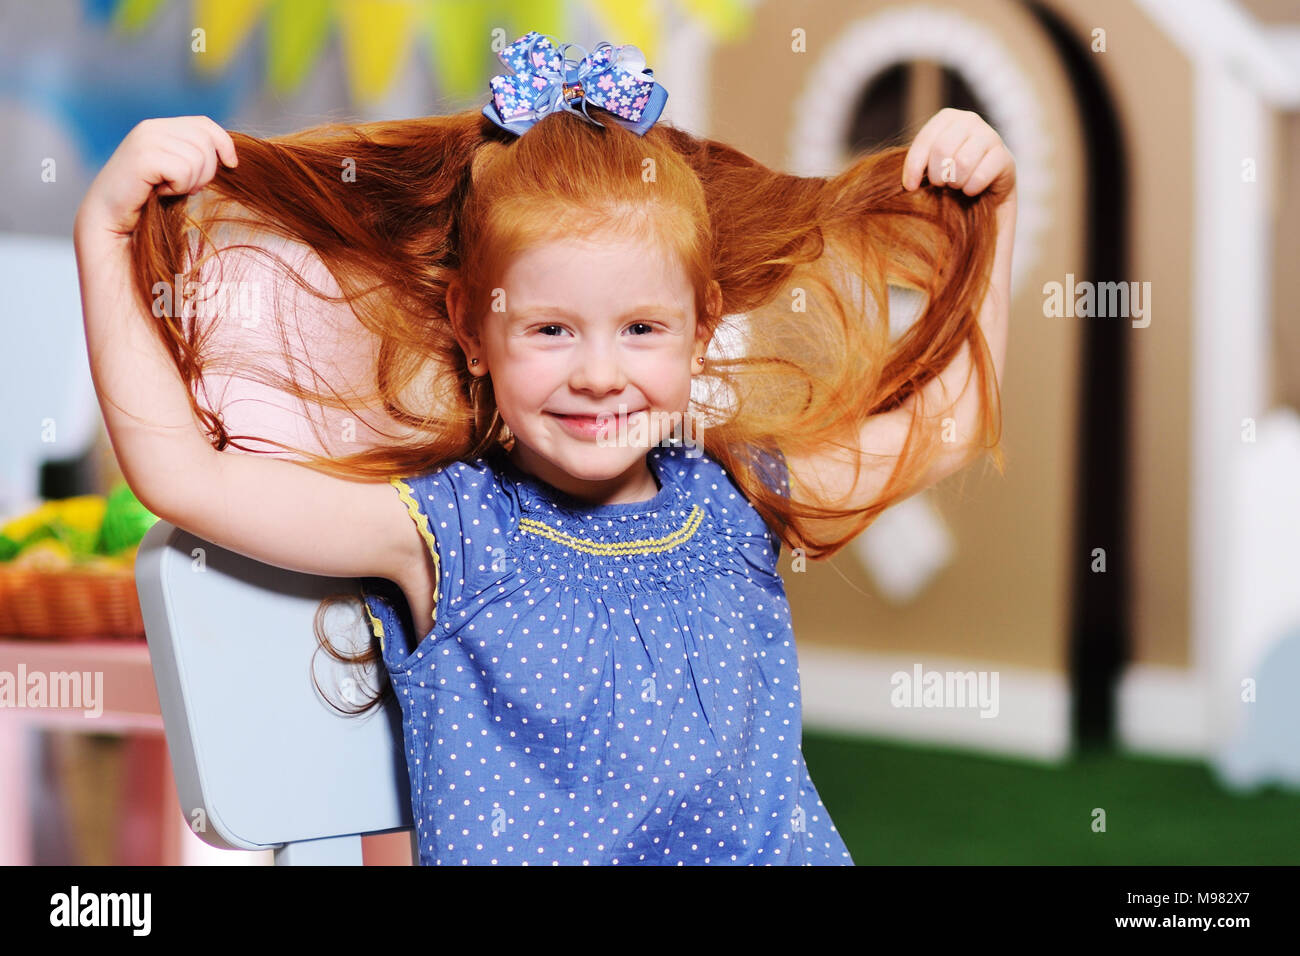 beautiful funny ginger girlr smiling and grimacing - Stock Image